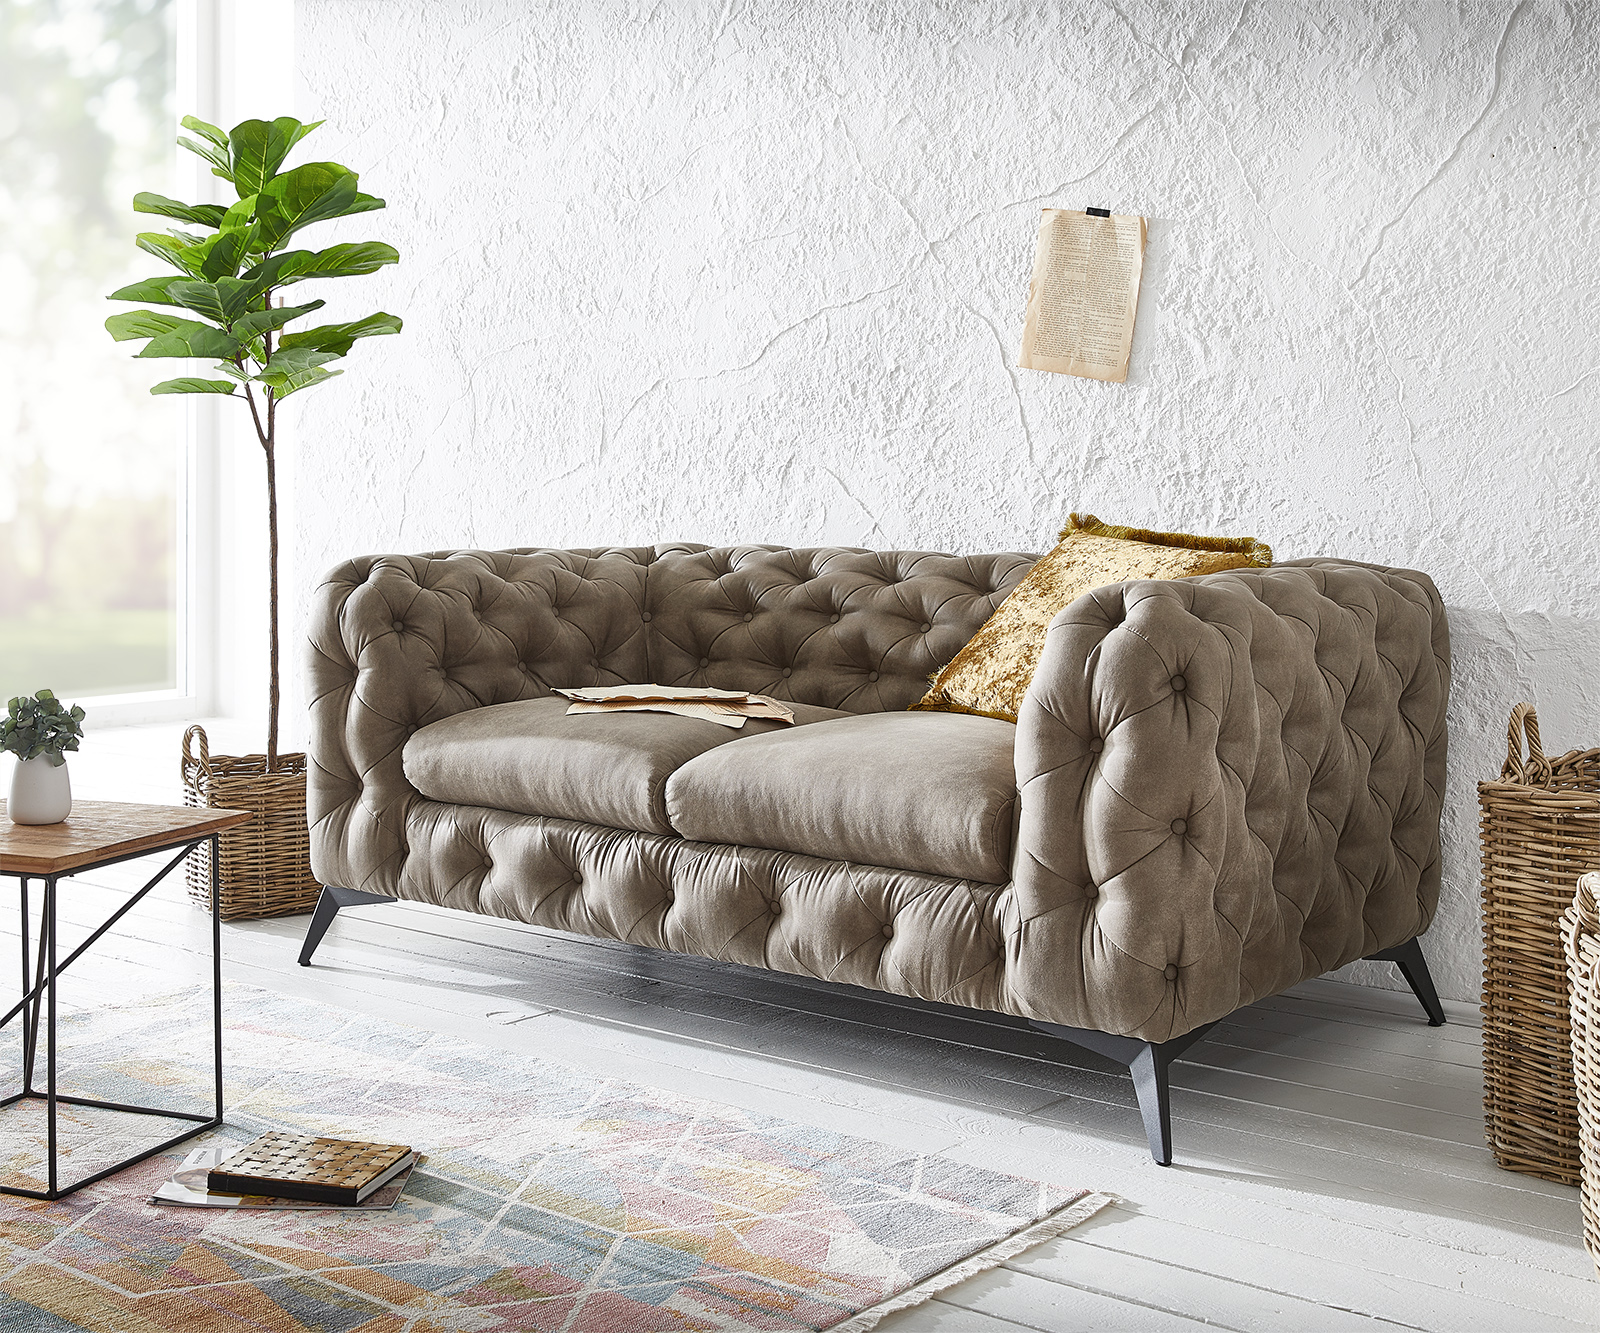 Couch Corleone 2-Sitzer Taupe Vintage